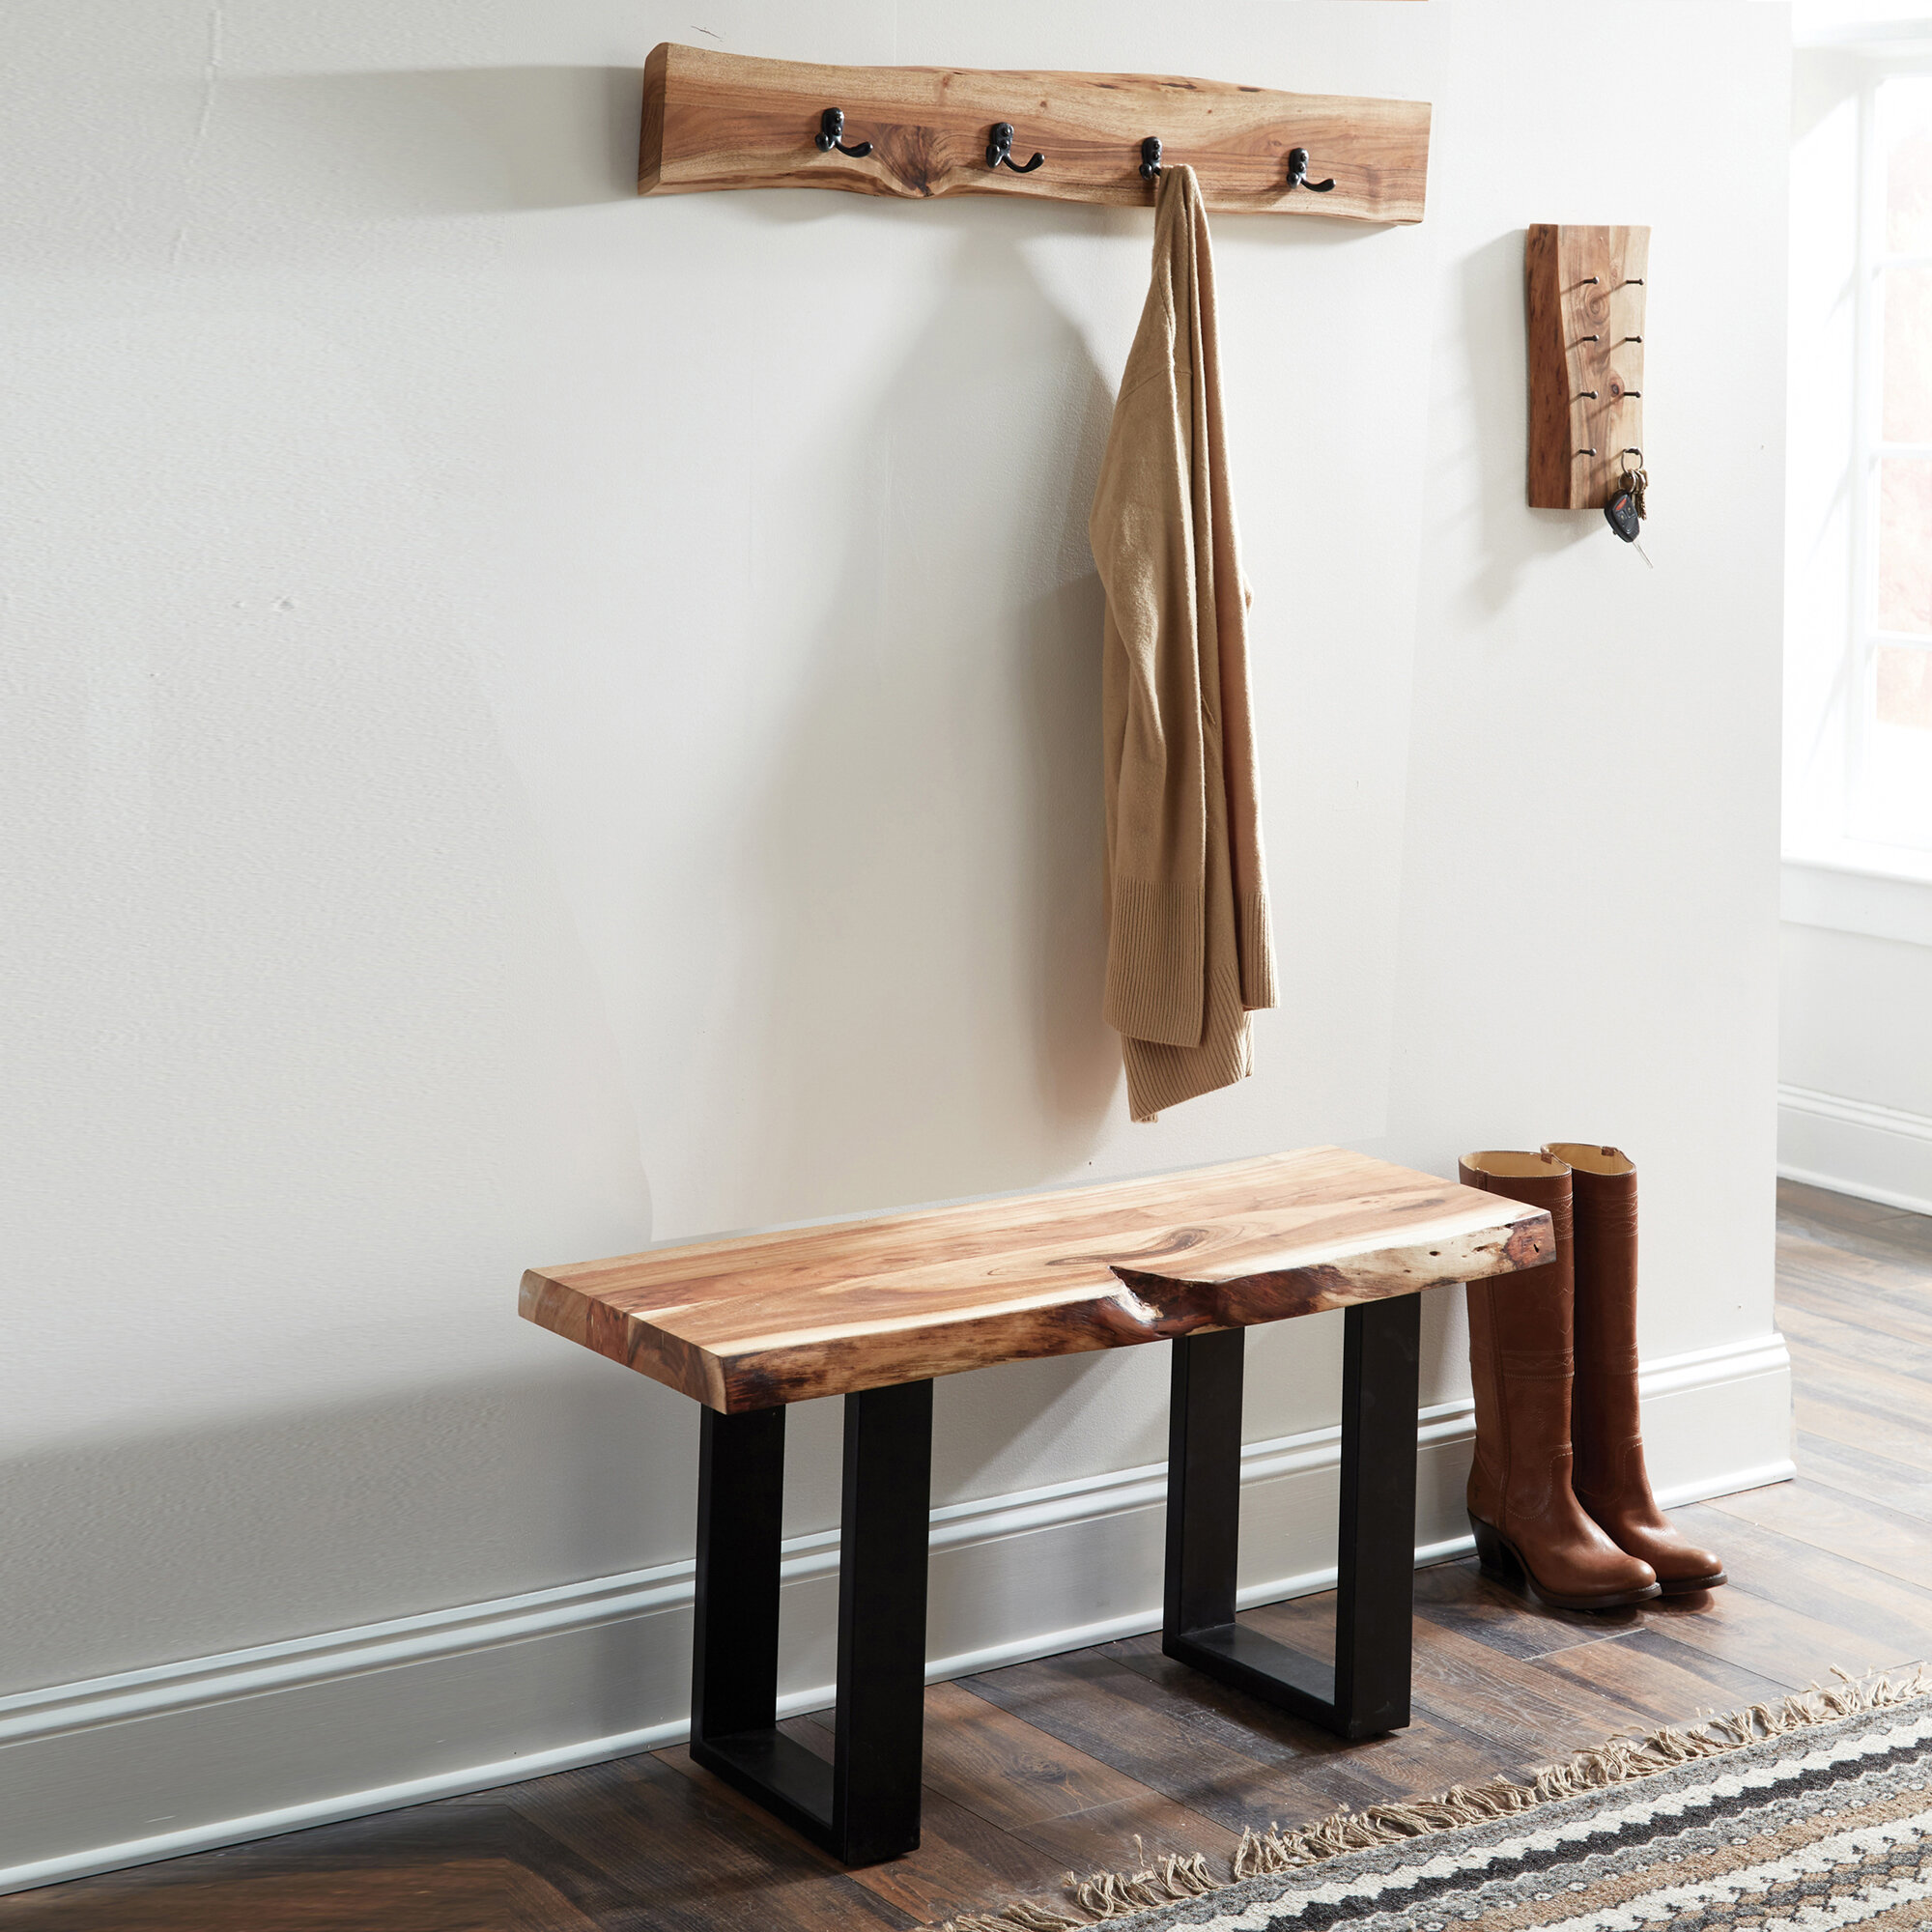 Foundry Select Bexton Live Edge Coat Hook and Bench Set Hall Tree